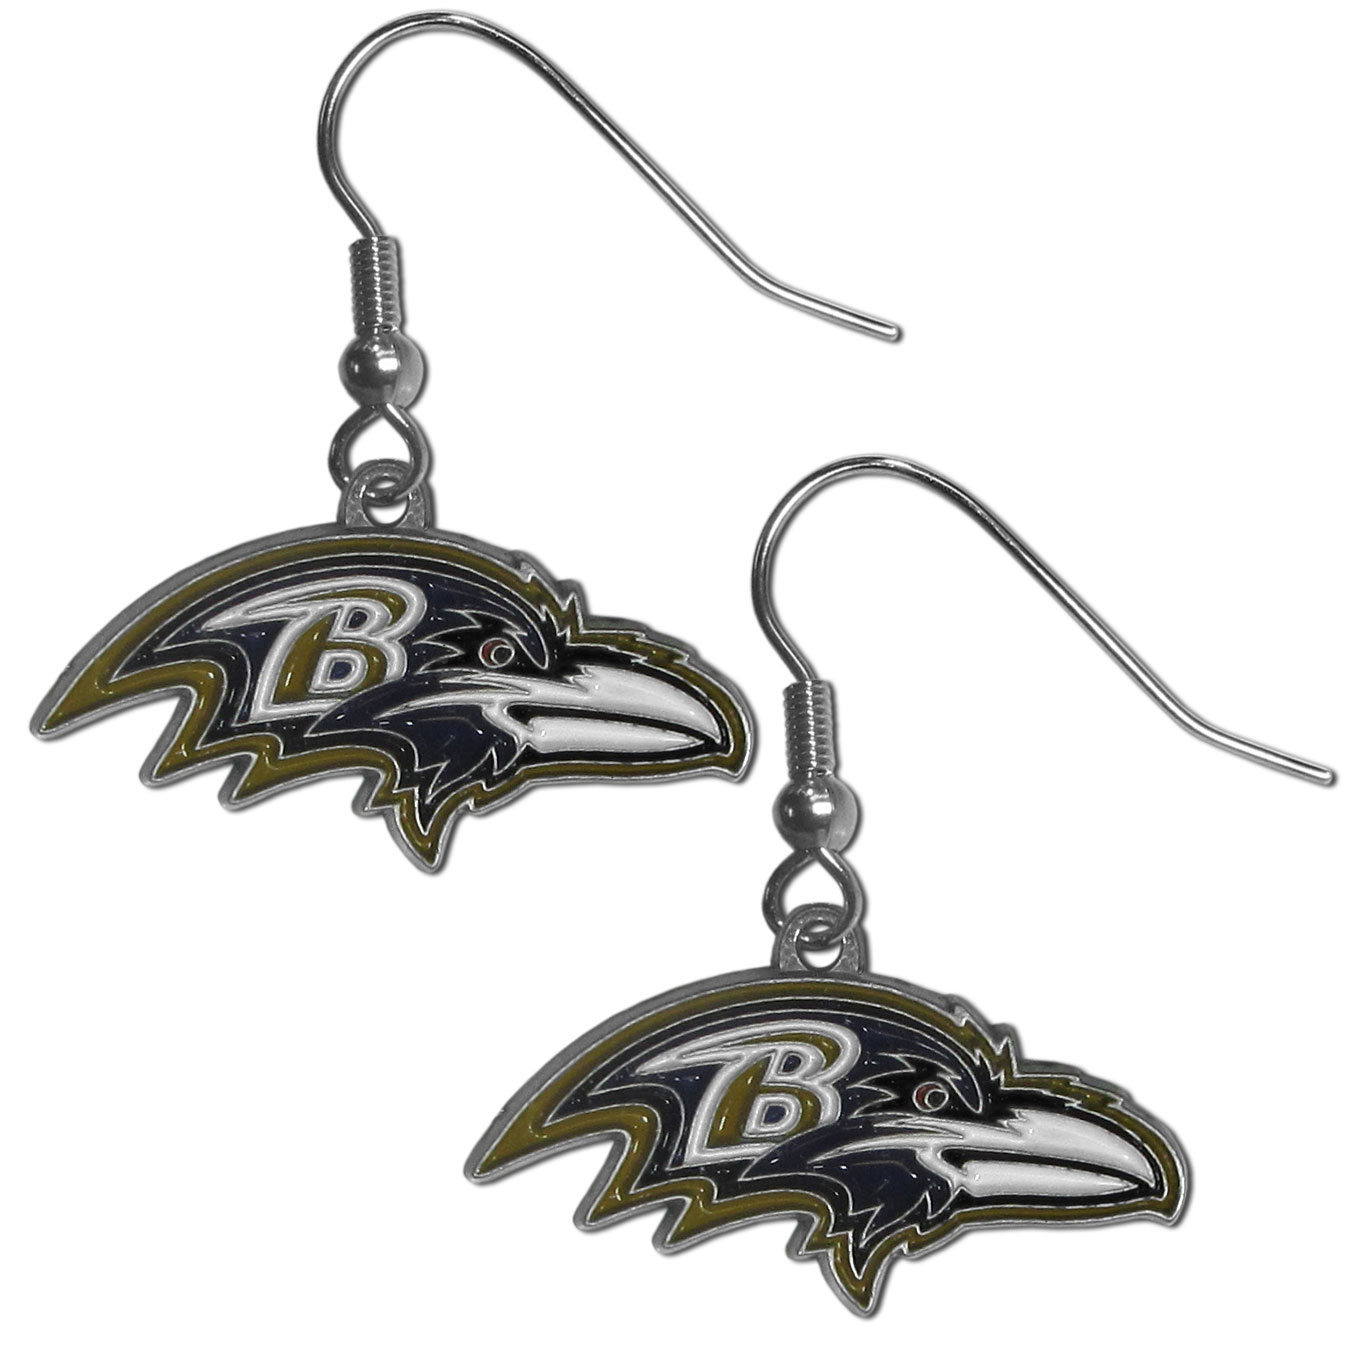 NFL Dangle Earrings - Baltimore Ravens - Enameled zinc Baltimore Ravens logo earrings with the NFL Baltimore Ravens Logo. A great way to show off your Baltimore Ravens spirit! Check out our entire licensed sports Baltimore Ravens jewelry line! Officially licensed NFL product Licensee: Siskiyou Buckle .com